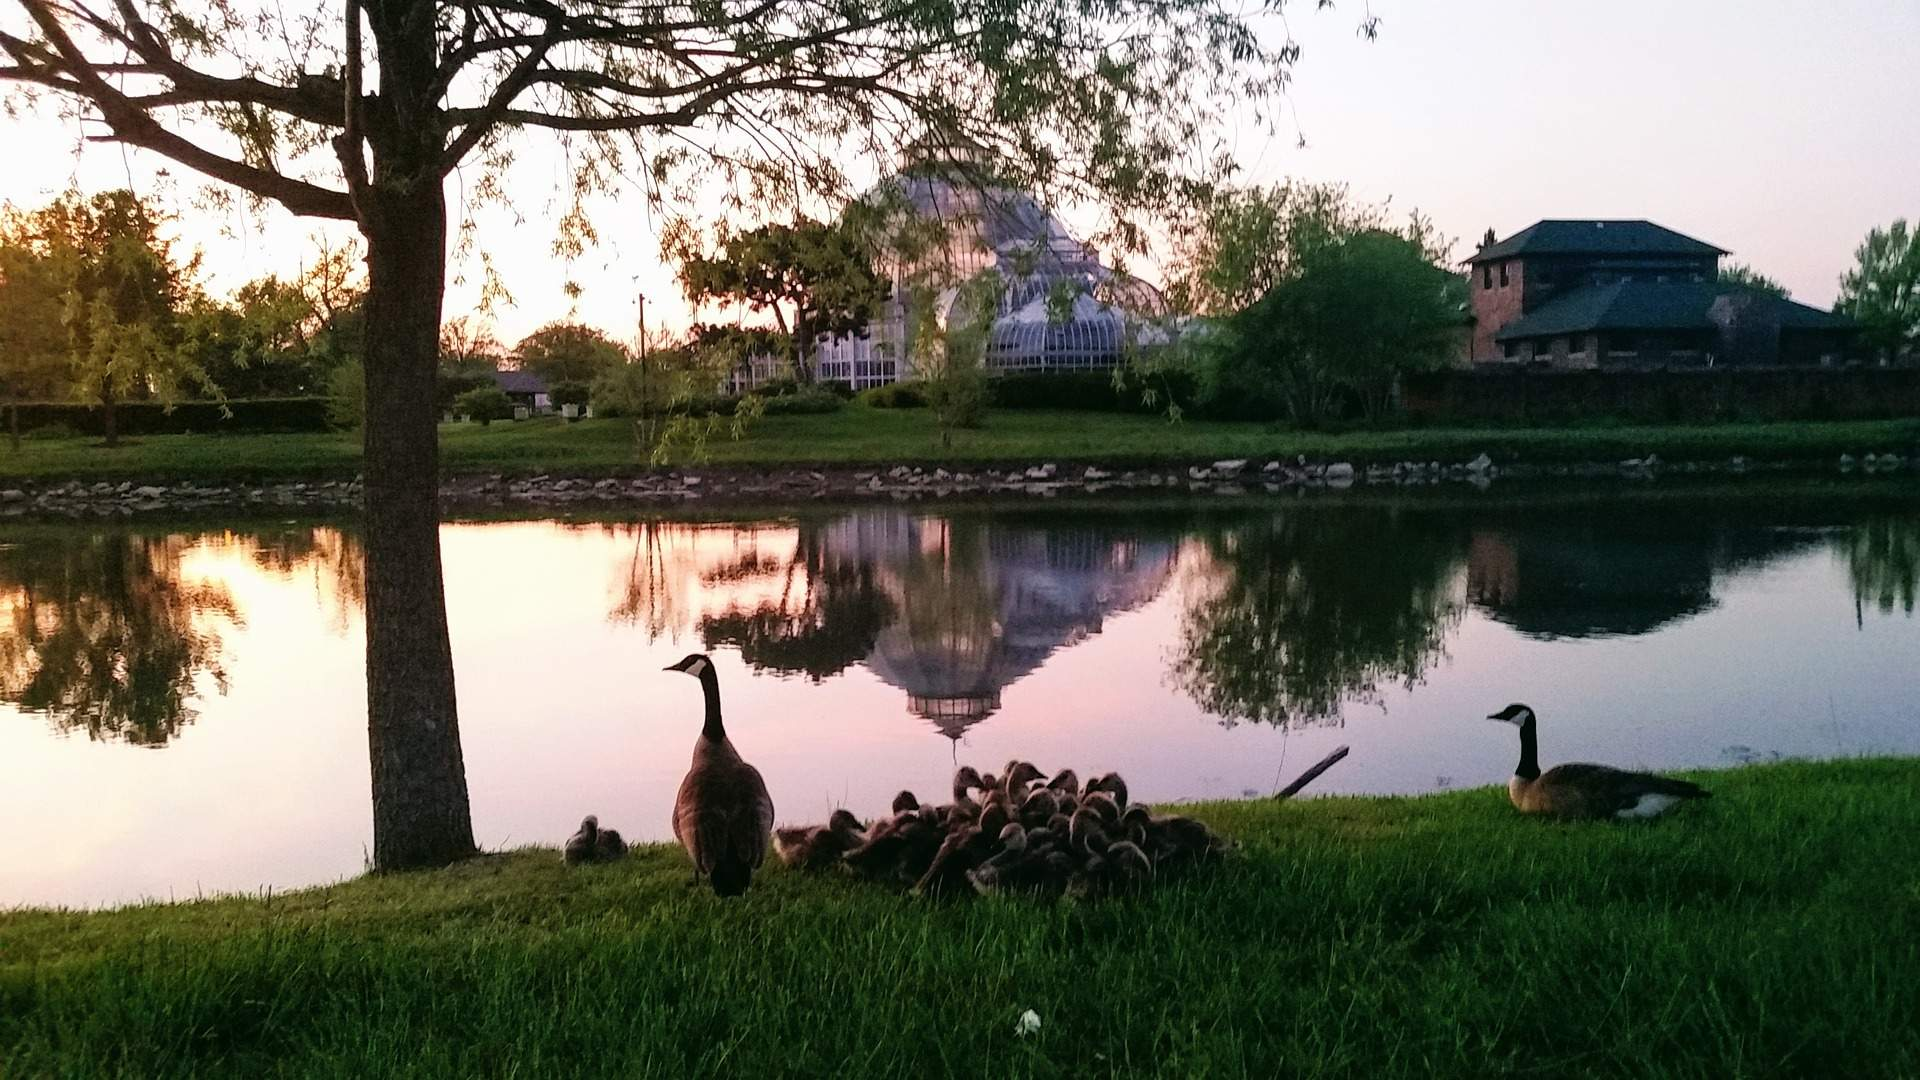 Geese outside the Anna Scripps Whitcomb Conservatory on Belle Isle at sunset